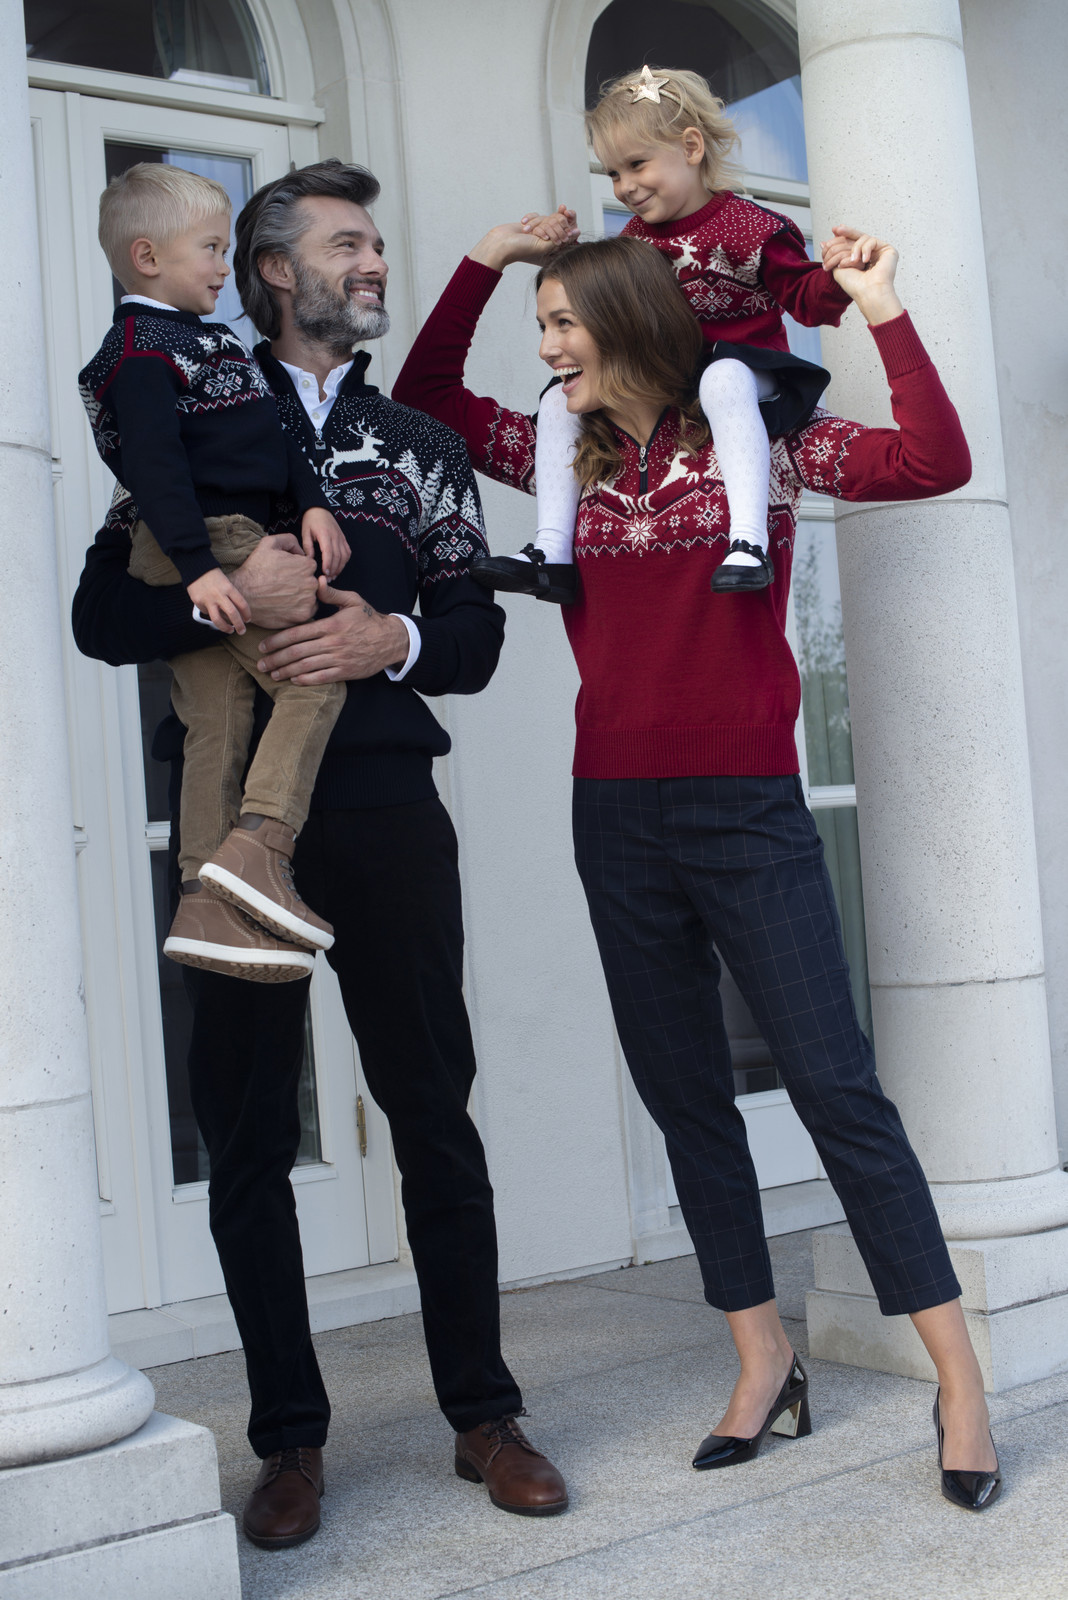 Family wearing Dale Christmas Sweaters 93921-B, 93931-C, 93941-B and 93941-C